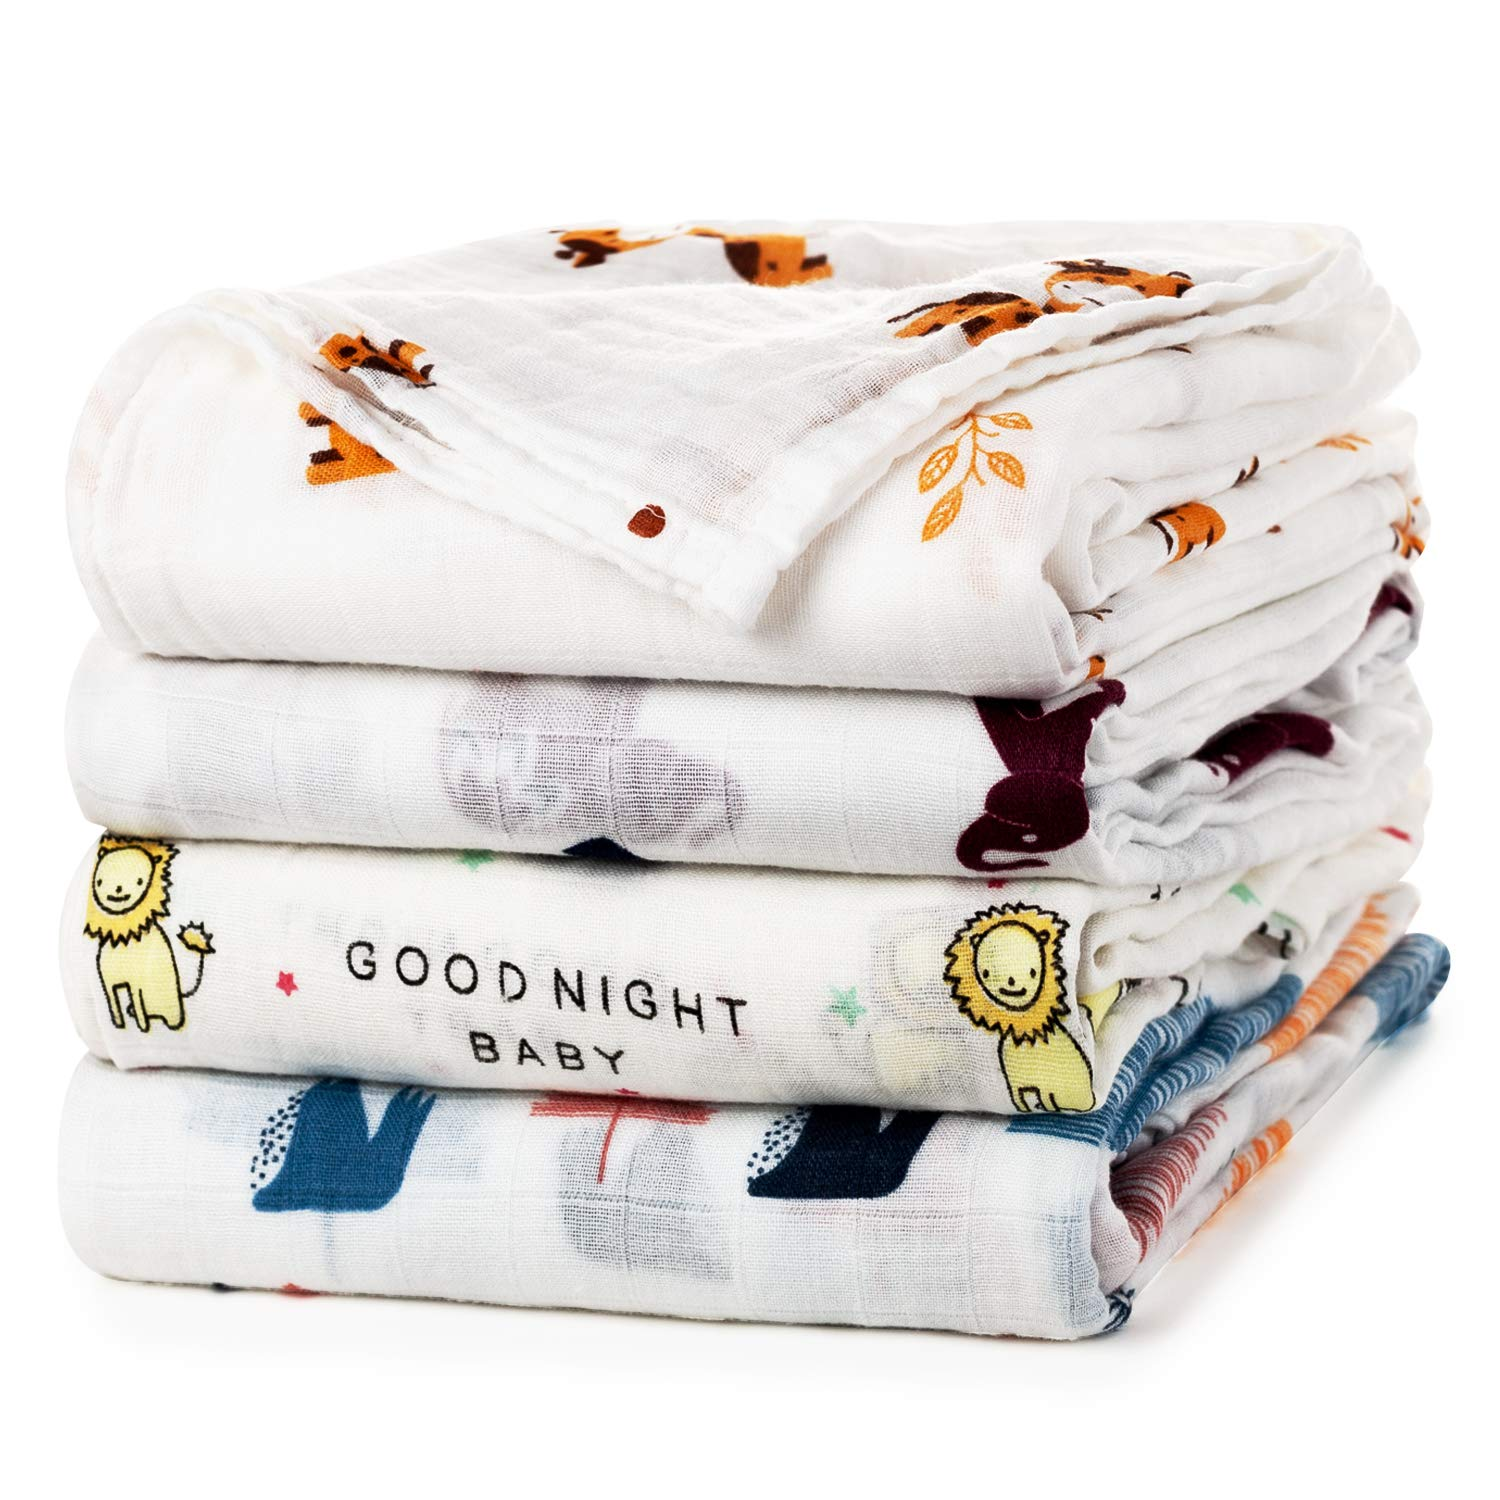 Baby Swaddle Blanket Upsimples Unisex Swaddle Wrap Soft Silky Bamboo Muslin Swaddle Blankets Neutral Receiving Blanket for Boys and Girls, Large 47 x 47 inches, Set of 4-Sika Deer/Elephant/Lion/Fox by upsimples